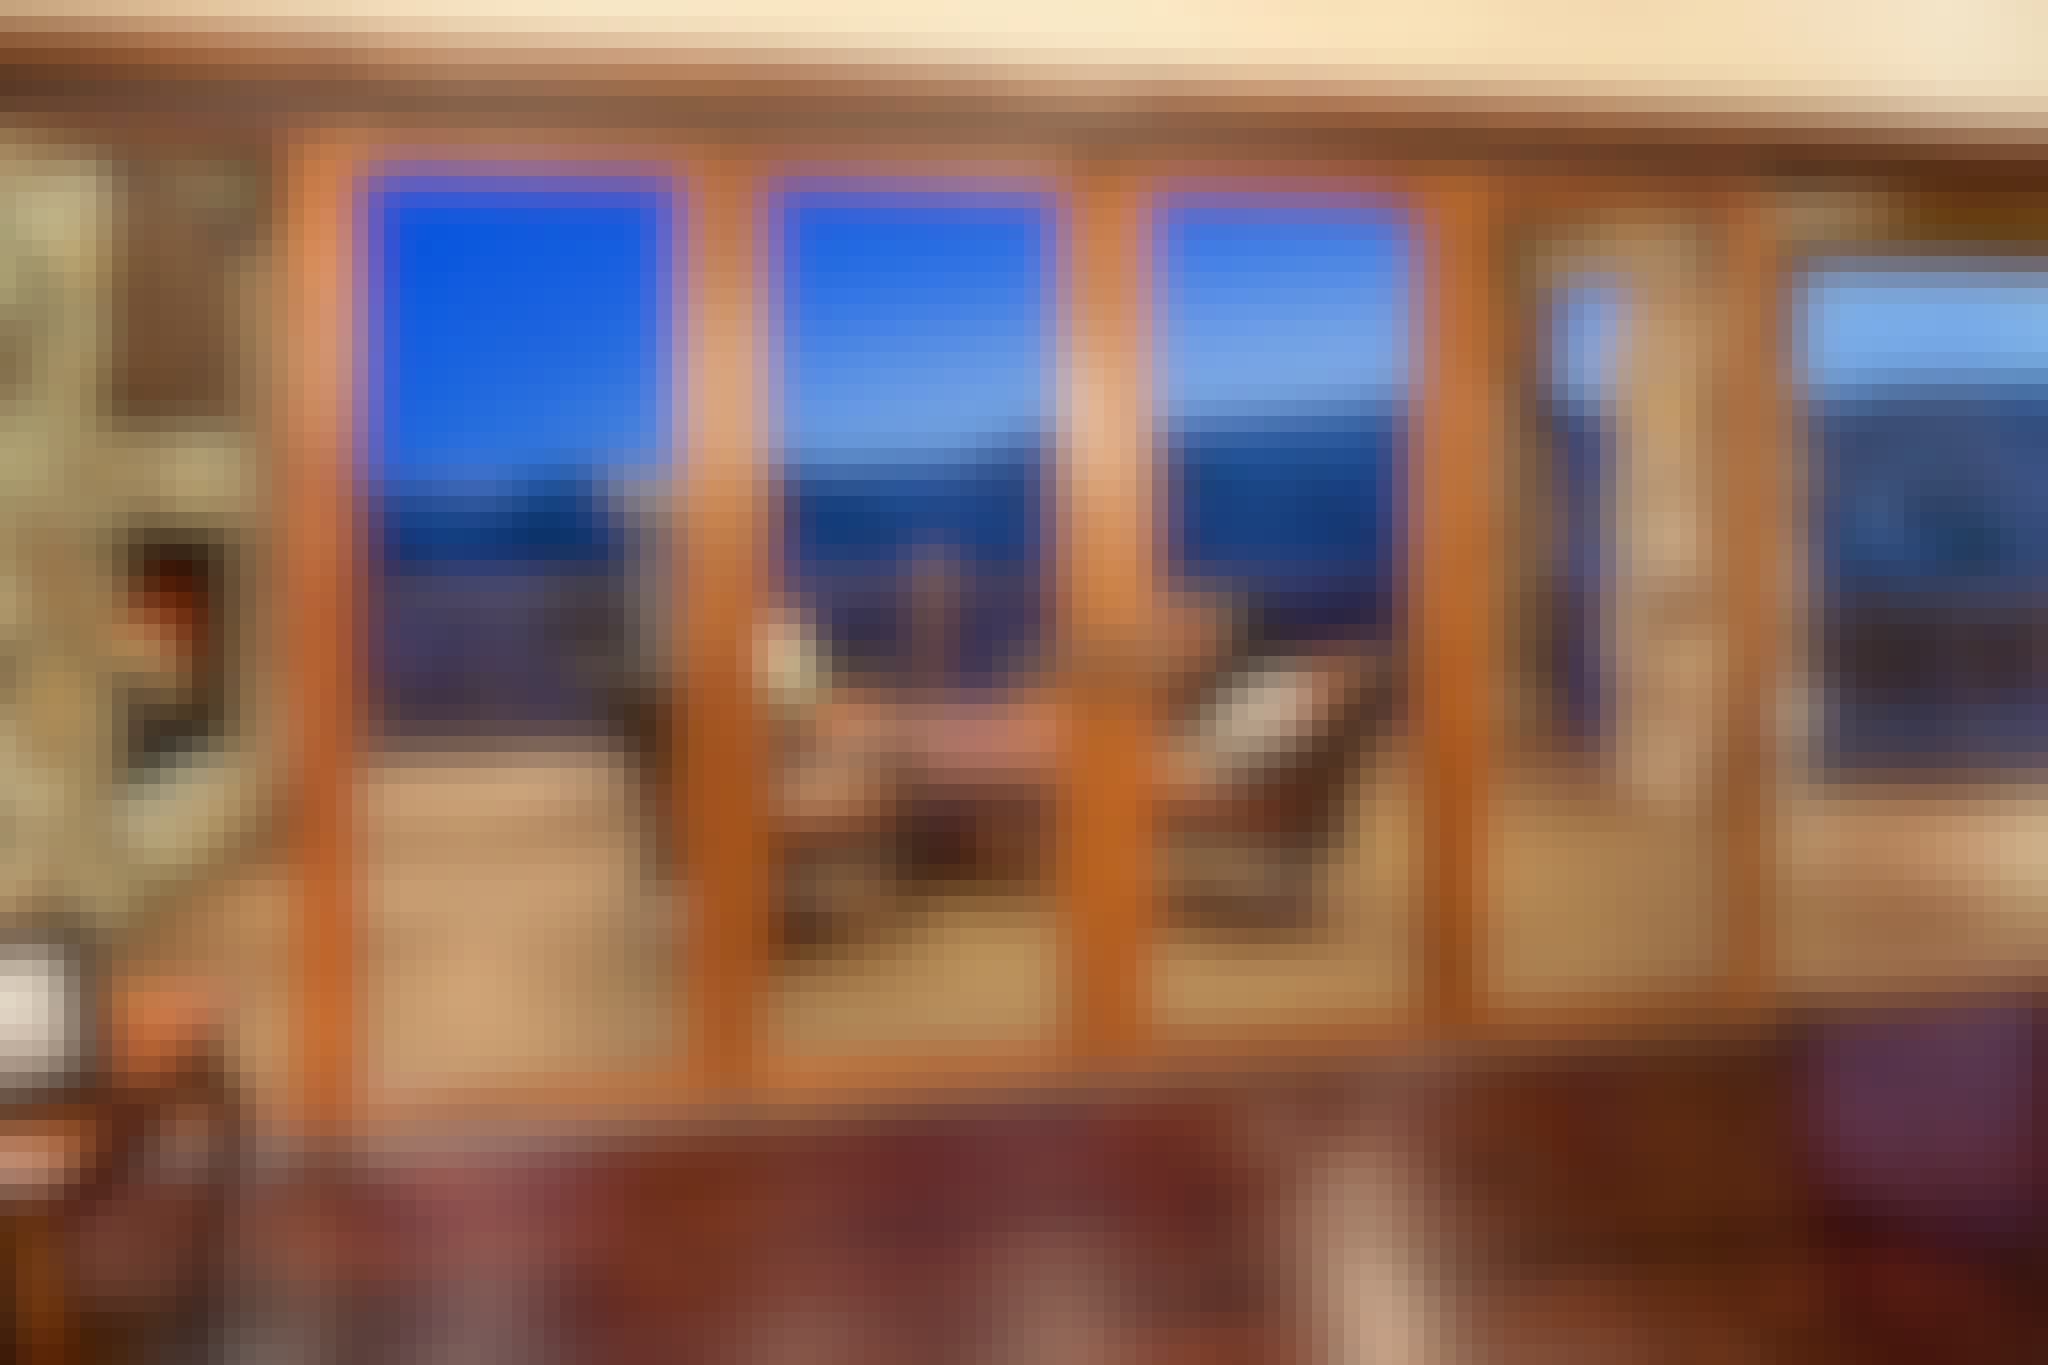 wood sliding glass wall with hillside view